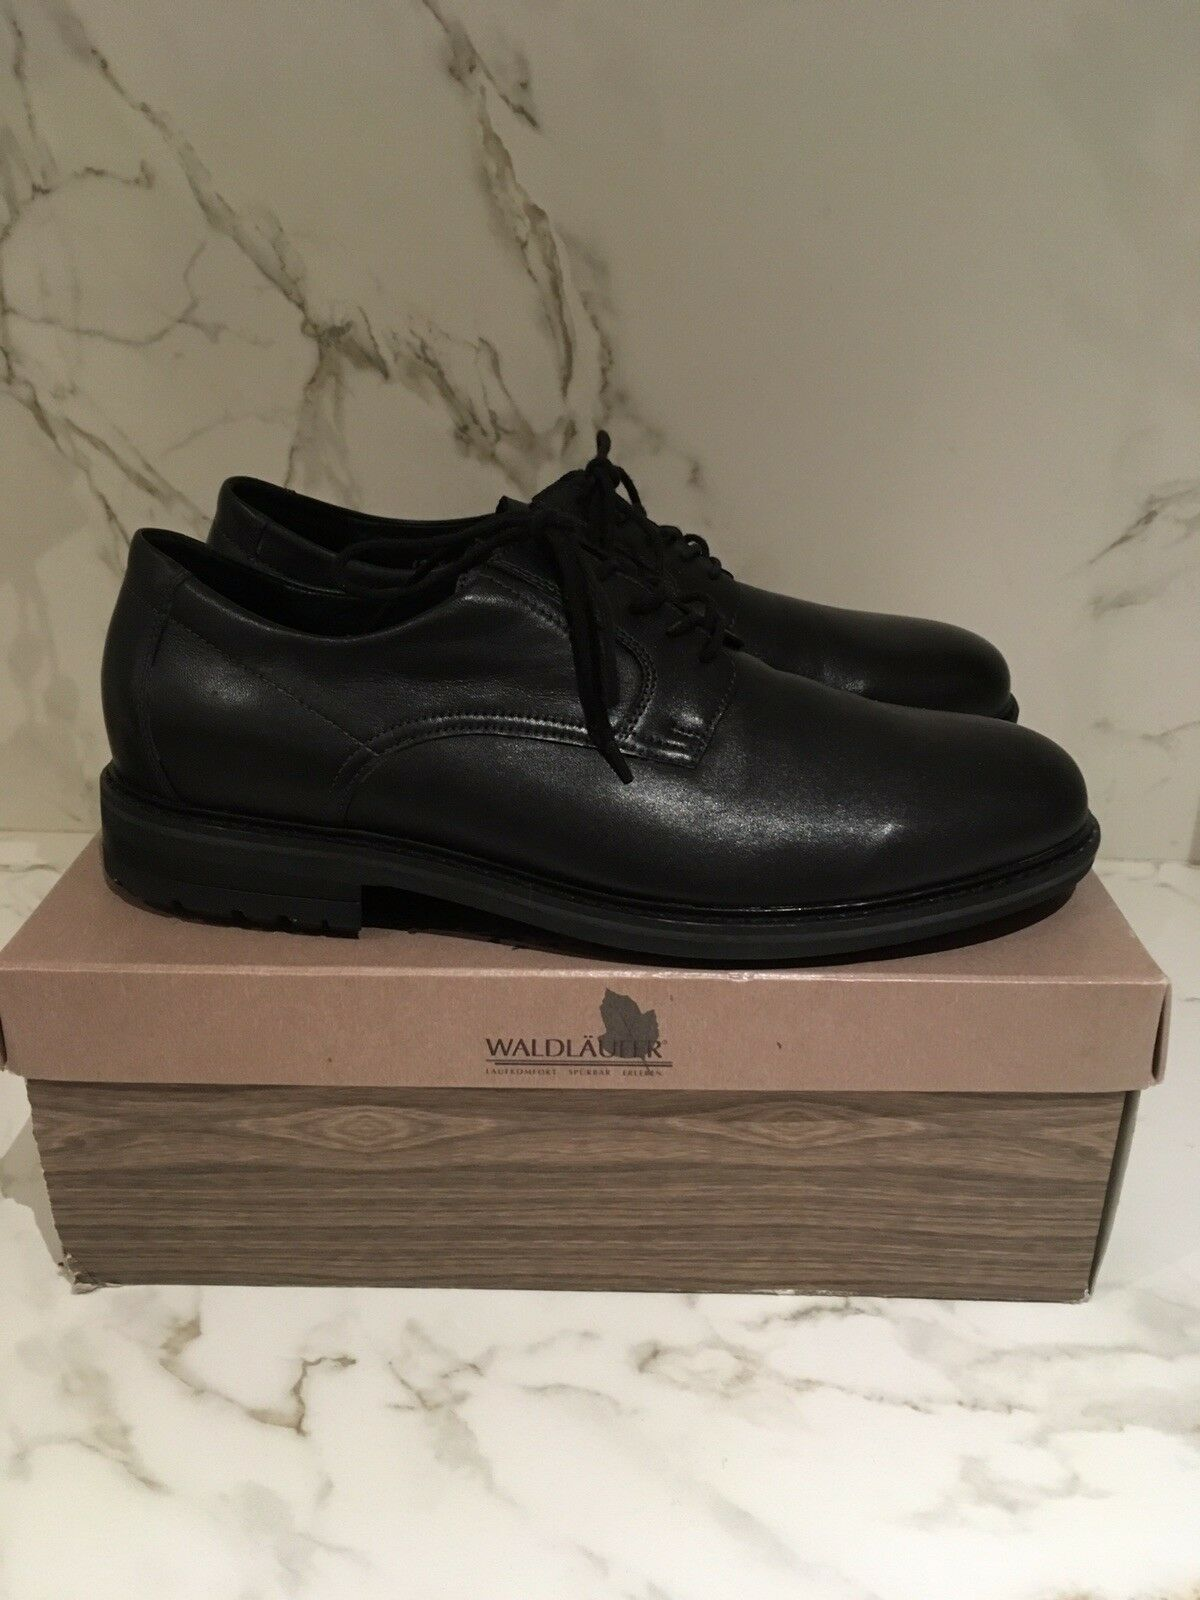 WALDLAUFER Gents Black Leather Lace Up shoes. U.K 12. Cost  New With Box